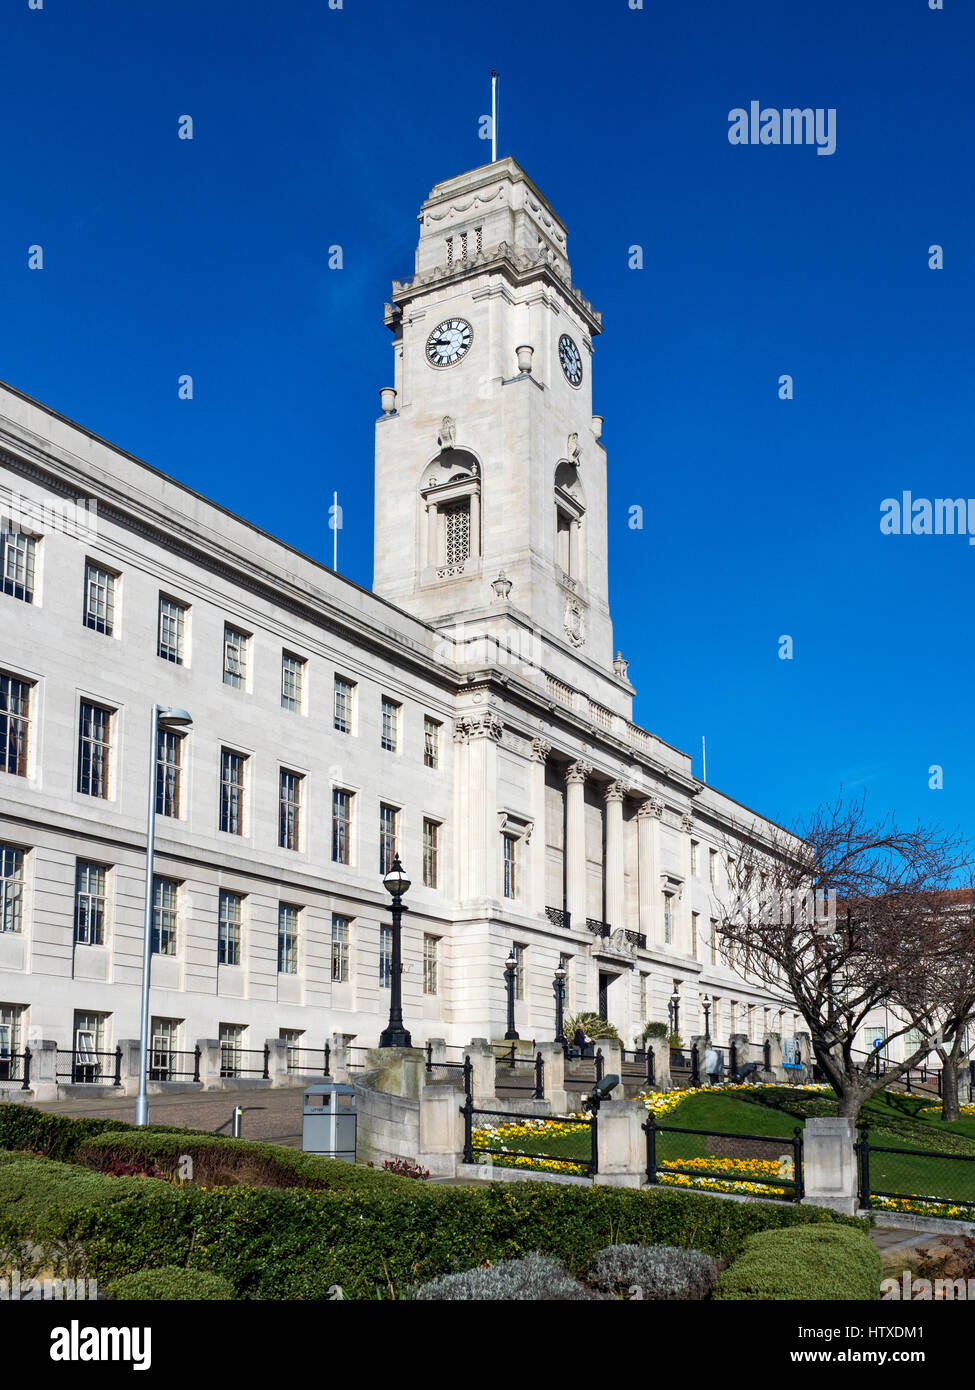 The Town Hall from Barnsley Pals Centenary Square in Barnsley South Yorkshire England - Stock Image